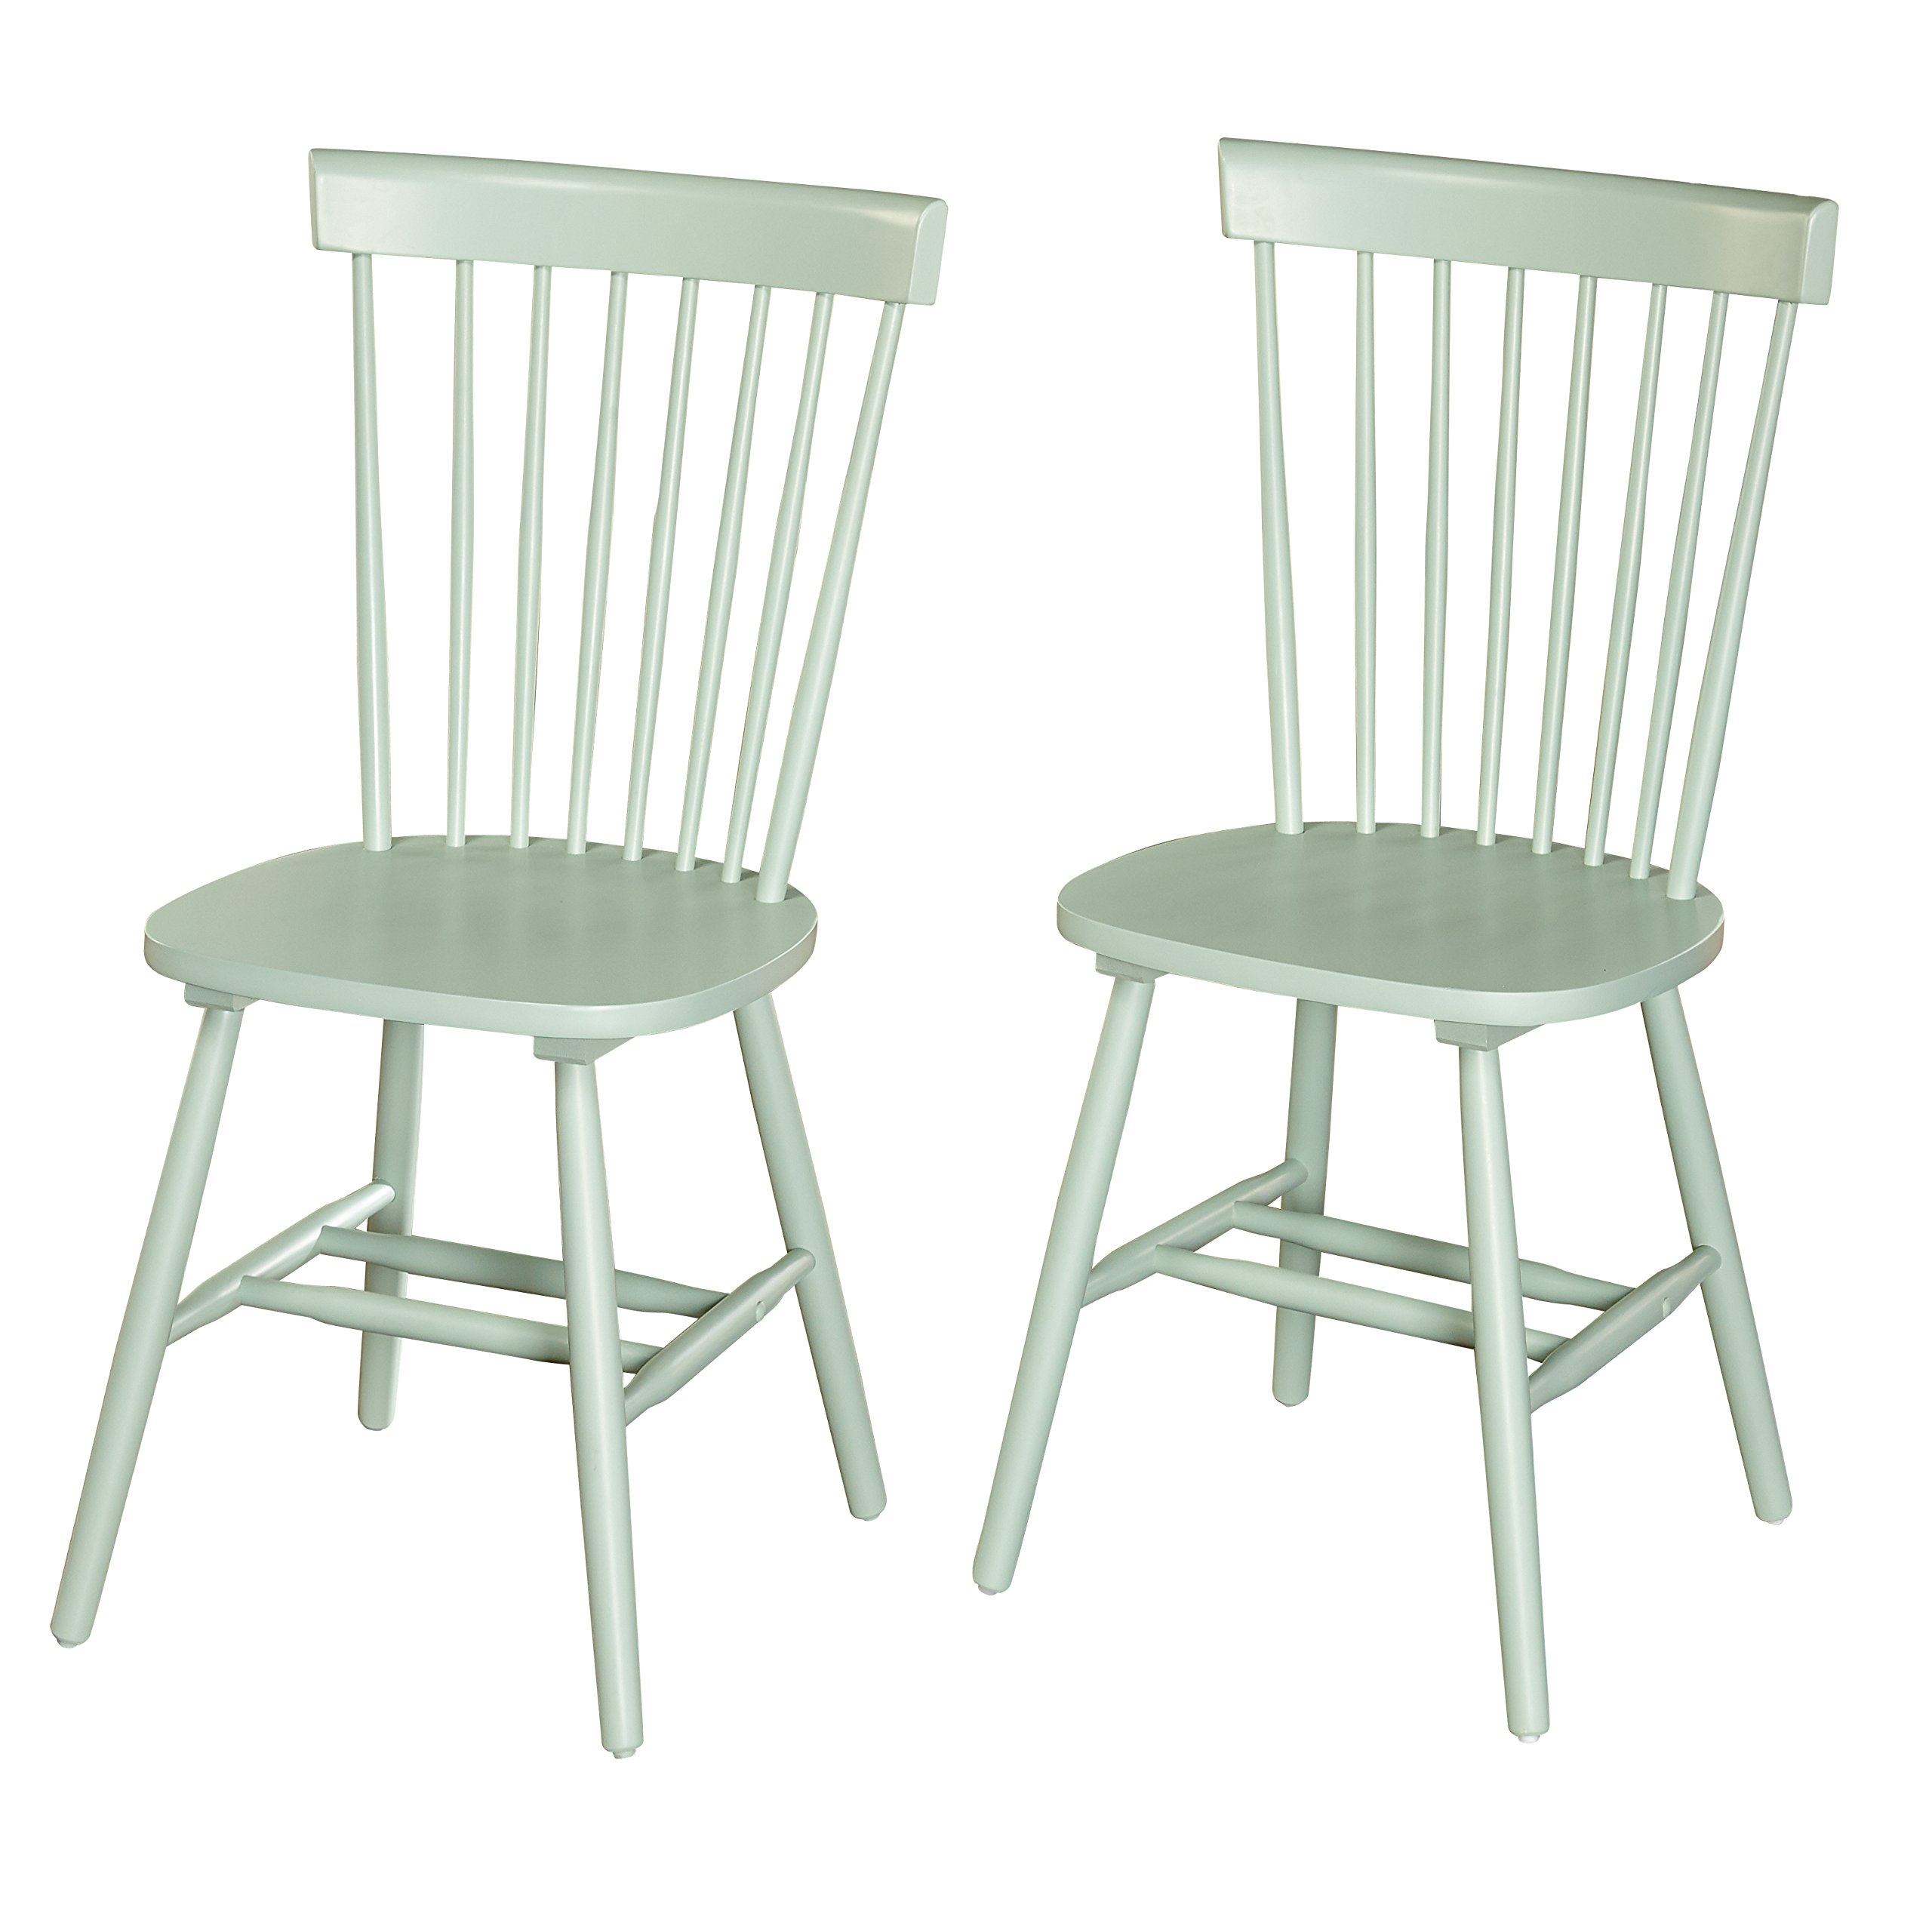 Target Marketing Systems 64918MIN PR Venice Set of 2 Dining Chairs, Mint